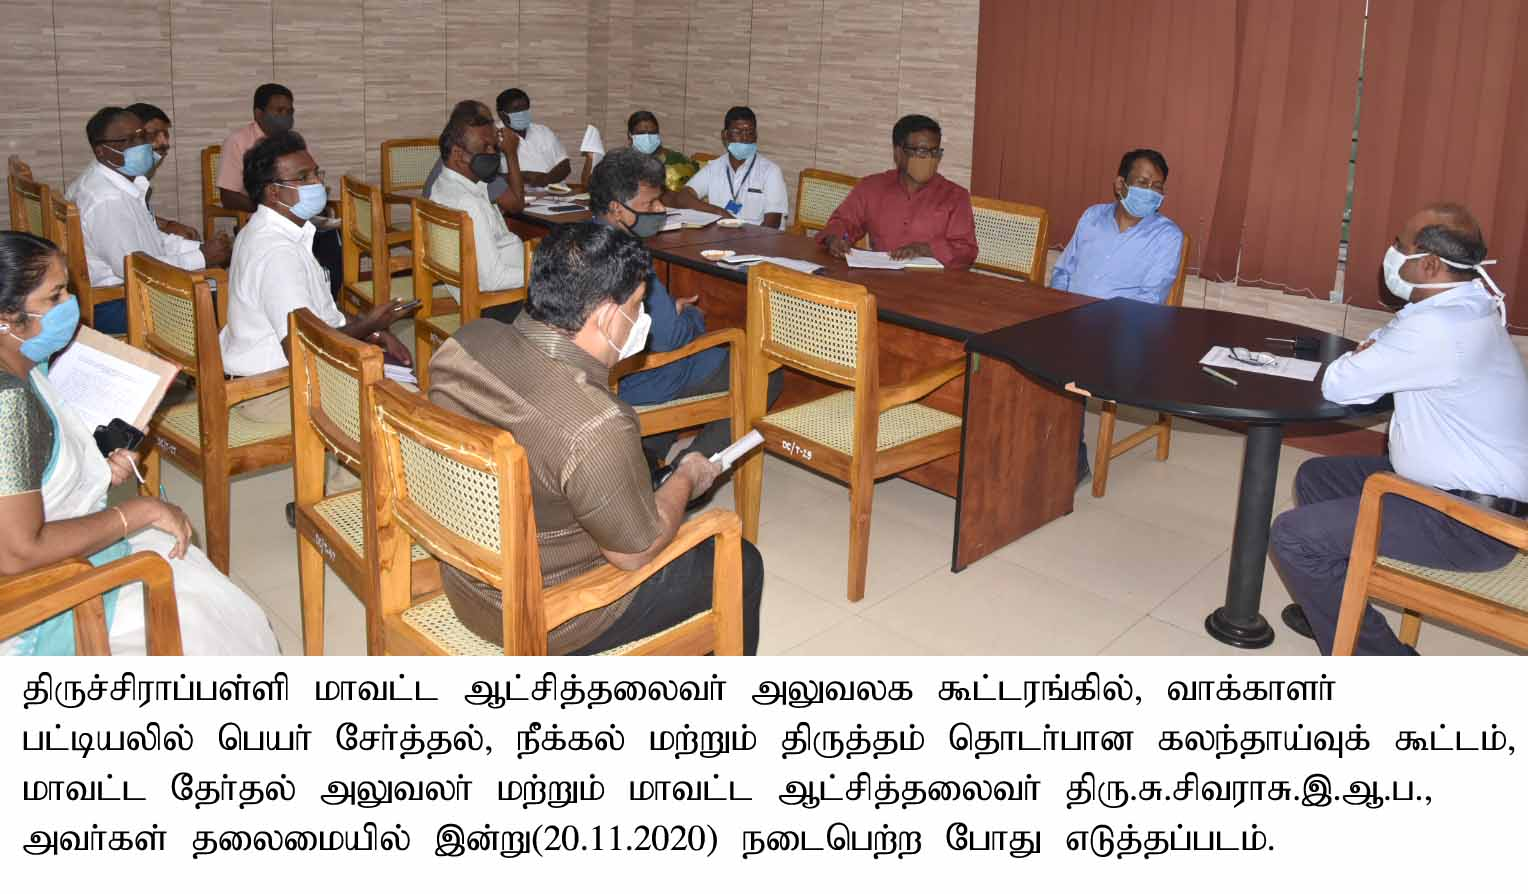 District Collector conducted Review meeting on Electoral Roll Spl. Summary Revision on 20.11.2020